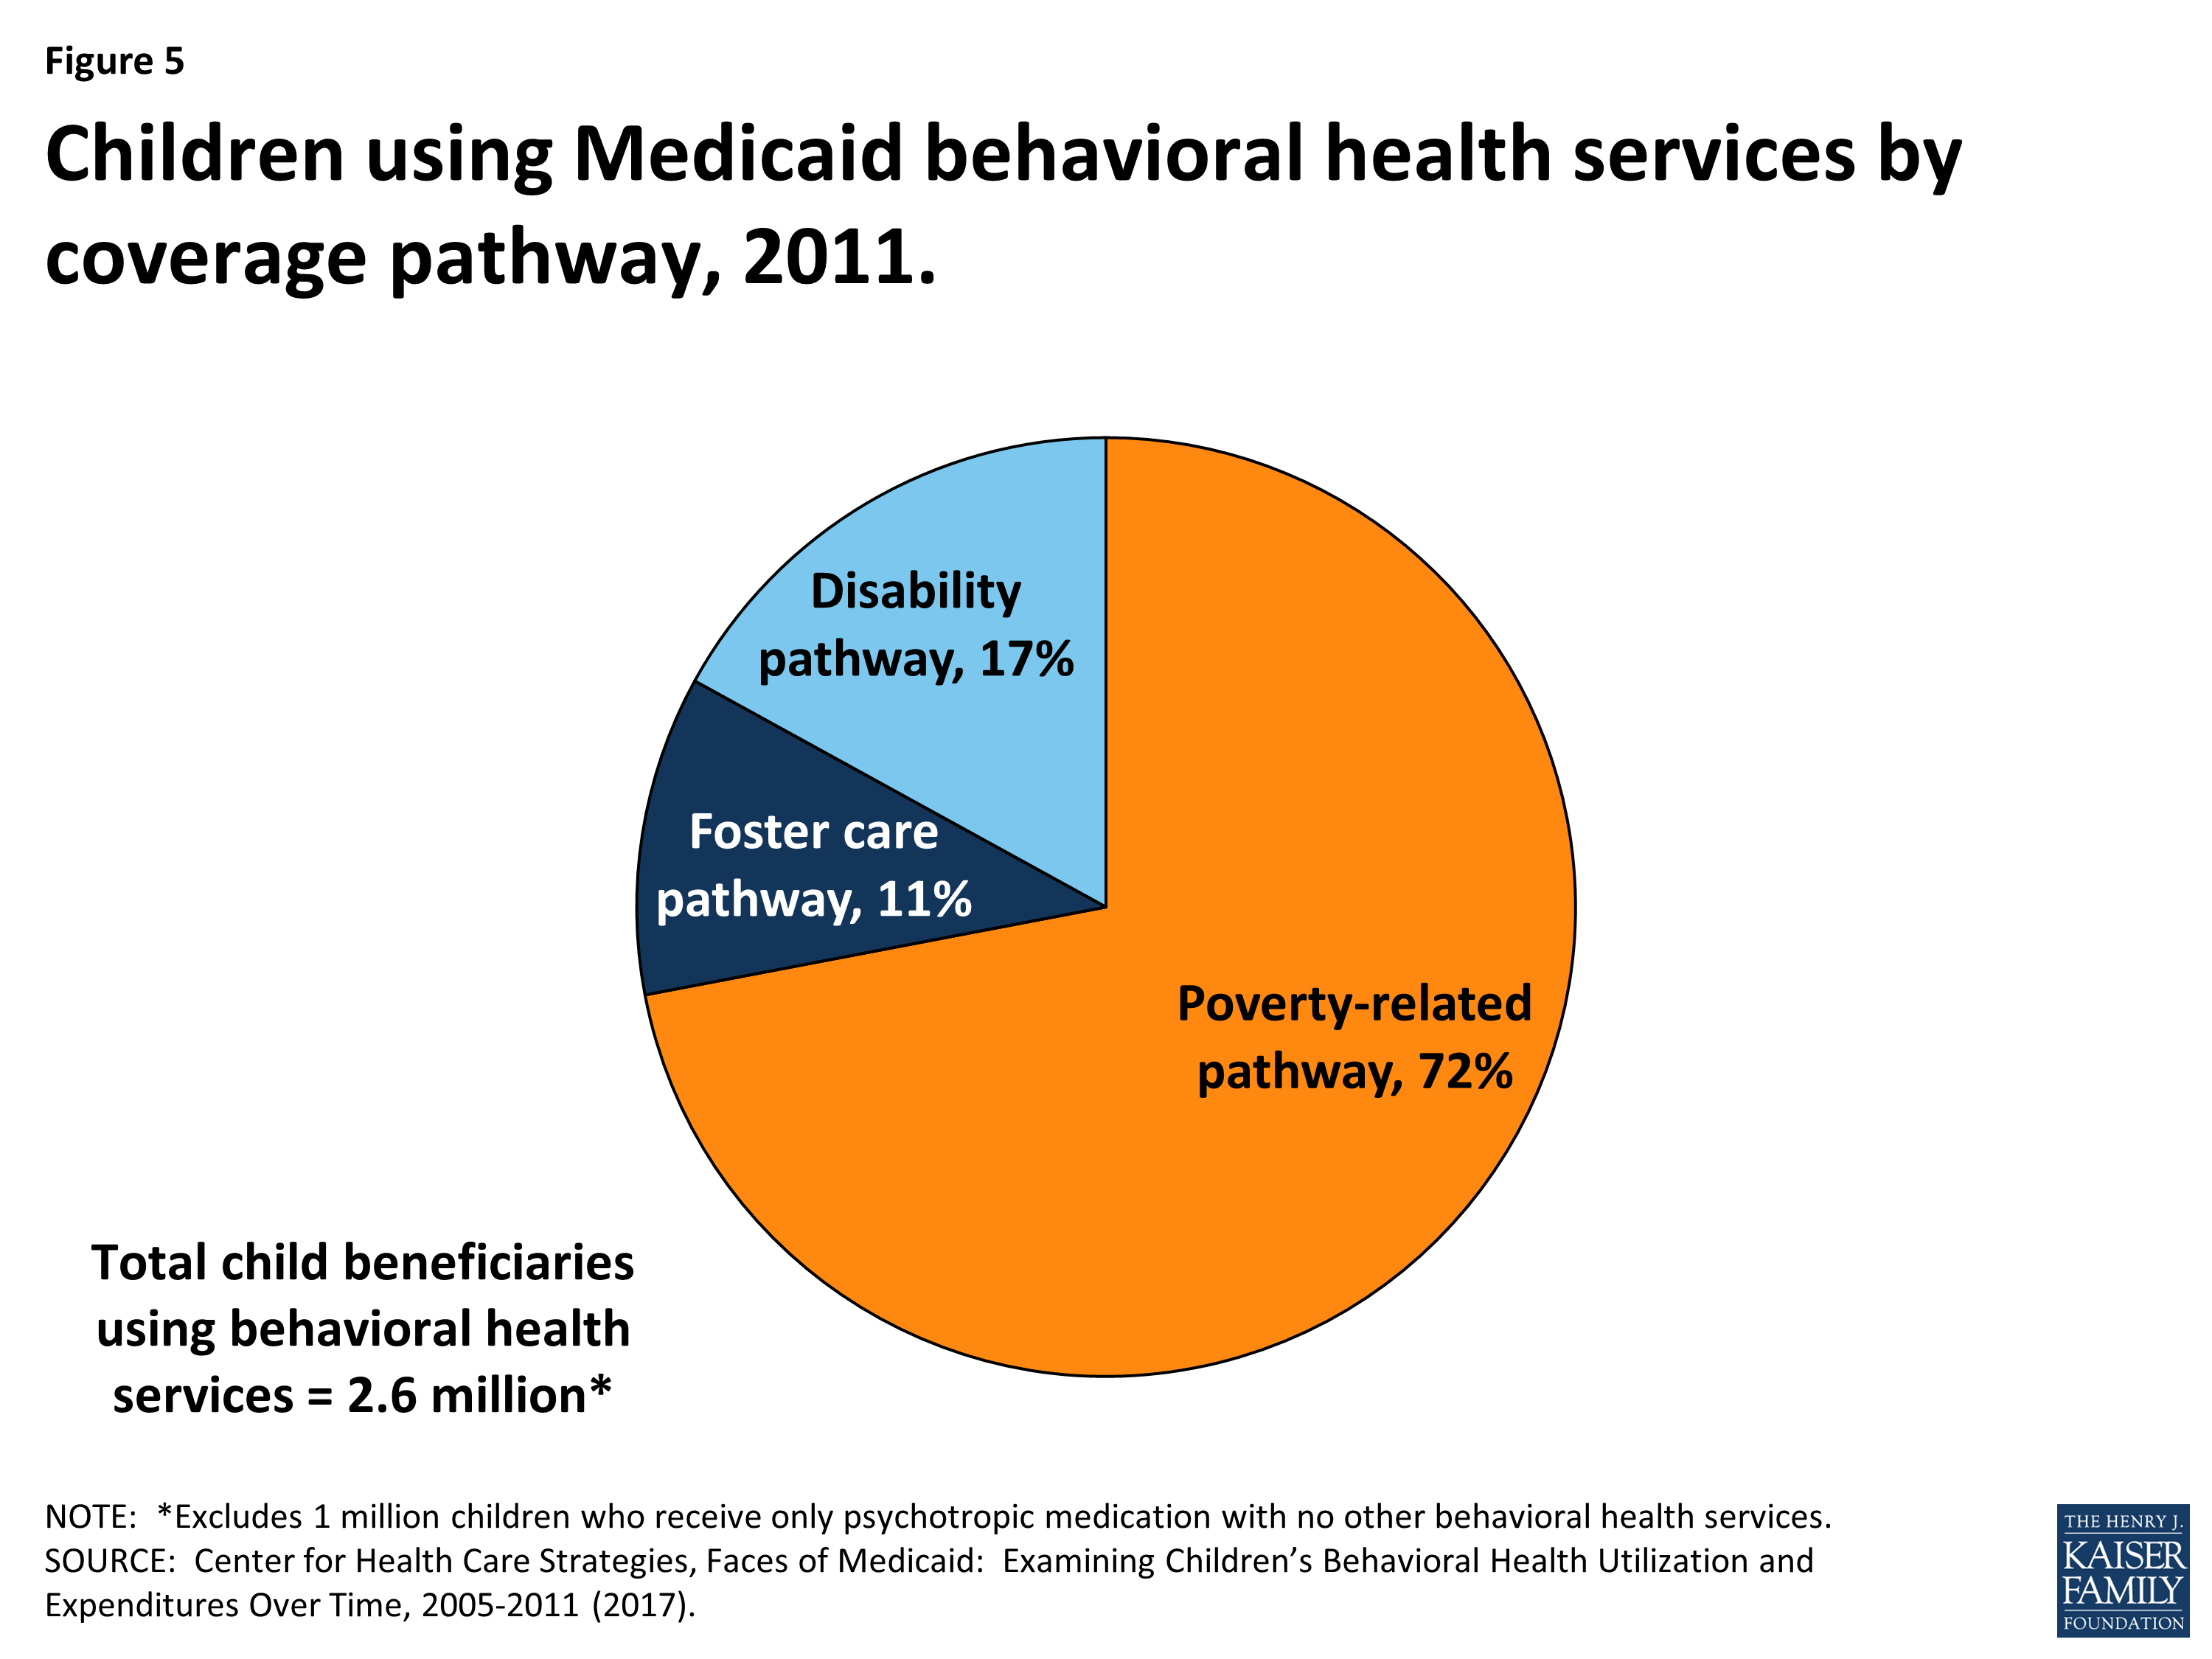 Ten Things to Know About Medicaid's Role for Children with